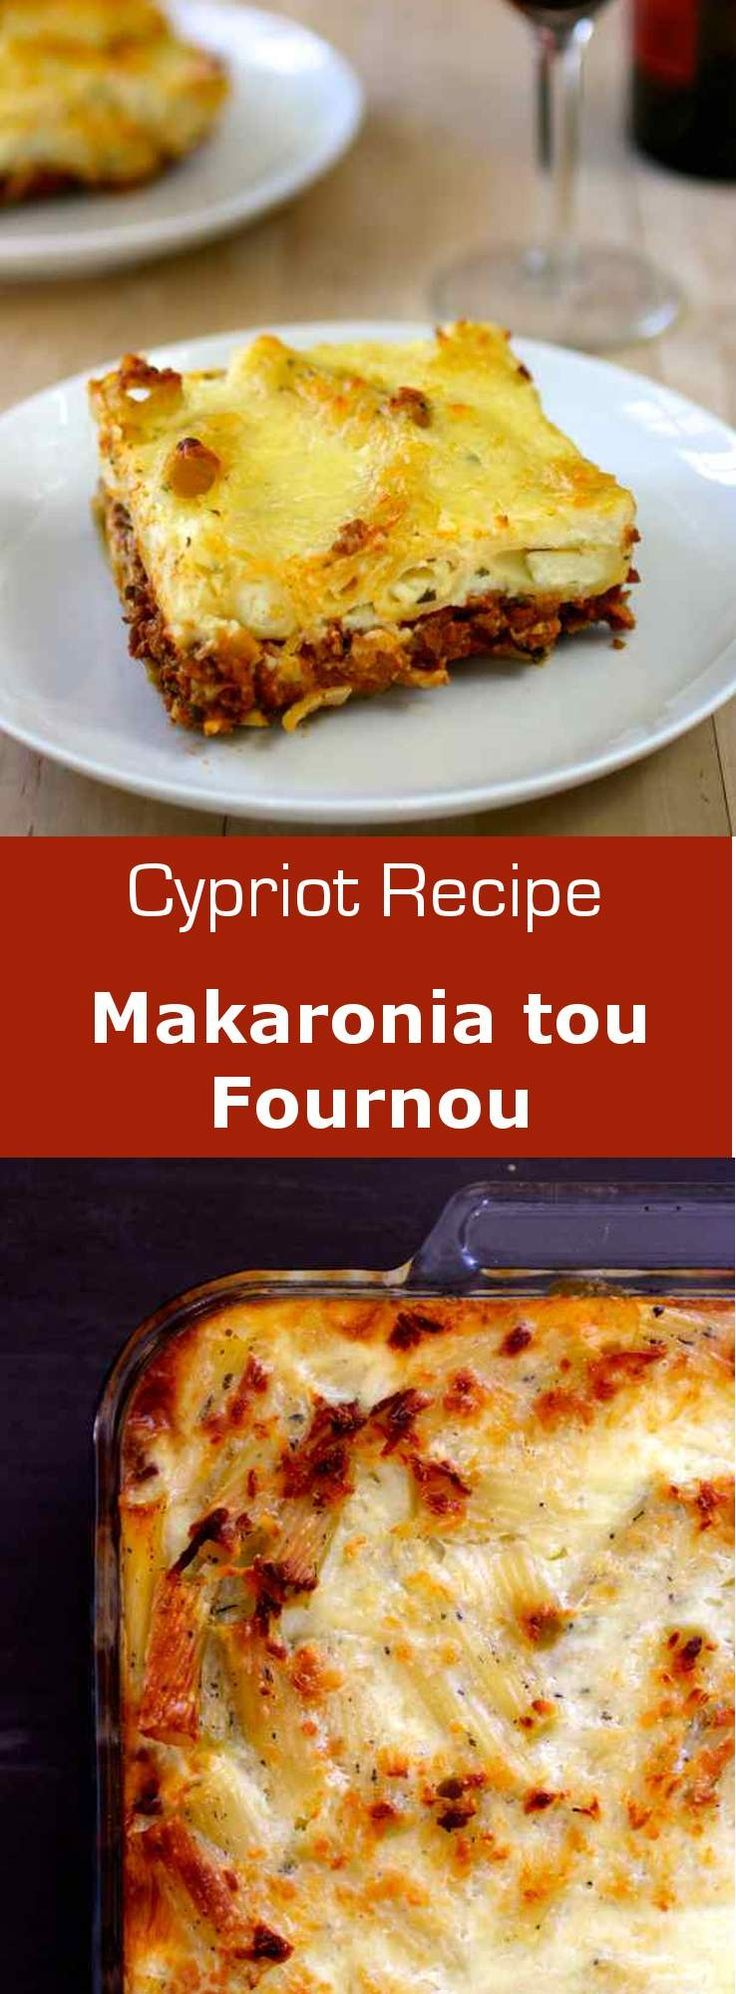 Makaronia tou fournou is the Cypriot version of pastitsio, the Greek oven-baked pasta with meat and tomato sauce as well as Béchamel. #cyprus #greek #mediterranean #pasta. #196flavors